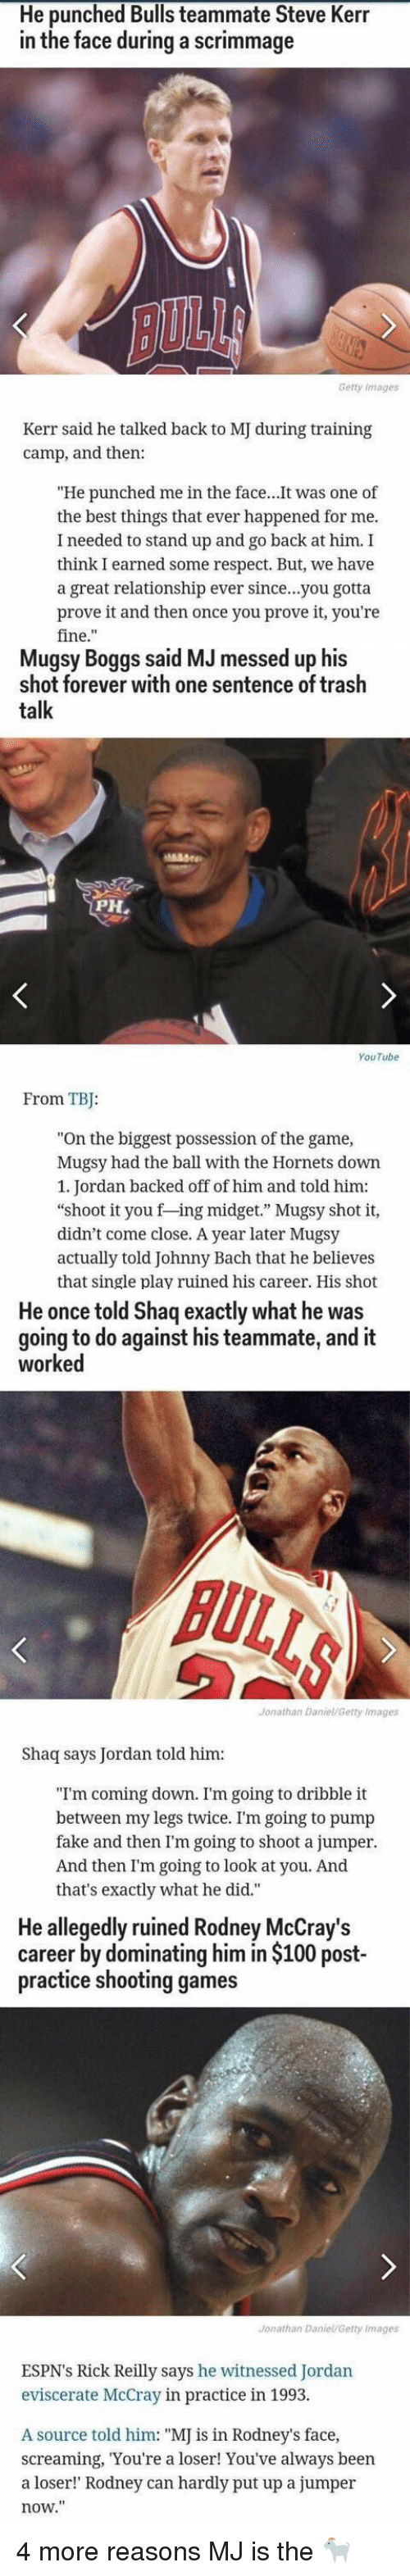 """midgets: He punched Bulls teammate Steve Kerr  in the face during a scrimmage  Getty Images  Kerr said he talked back to  MJ during training  camp, and then:  """"He punched me in the face  It was one of  the best things that ever happened for me.  I needed to stand up and go back at him. I  think I earned some respect. But, we have  a great relationship ever since...you gotta  prove it and then once you prove it, you're  fine   Mugsy said MJ essed up his  Boggs shot forever with one sentence of trash  talk  PH,  YouTube  From TB:  """"On the biggest possession of the game,  Mugsy had the ball with the Hornets down  1. Jordan backed off of him and told him:  """"shoot it you f ing midget."""" Mugsy shot it,  didn't come close. A year later Mugsy  actually told Johnny Bach that he believes  that single play ruined his career. His shot   He once told Shaq exactly what he was  going to do against his teammate, and it  worked  Jonathan Daniel/Getty Images  Shaq says Jordan told him:  """"I'm coming down. I'm going to dribble it  between my legs twice. I'm going to pump  fake and then I'm going to shoot a jumper.  And then I'm going to look at you. And  that's exactly what he did.""""   He allegedly ruined Rodney McCray's  career by dominating him in $100 post-  practice shooting games  Jonathan Daniel Getty Images  ESPN's Rick Reilly says he witnessed Jordan  eviscerate McCray in practice in 1993.  A source told him: """"MJ is in Rodney's face,  screaming, You're a loser! You've always been  a loser!"""" Rodney can hardly put up a jumper  now."""" 4 more reasons MJ is the 🐐"""